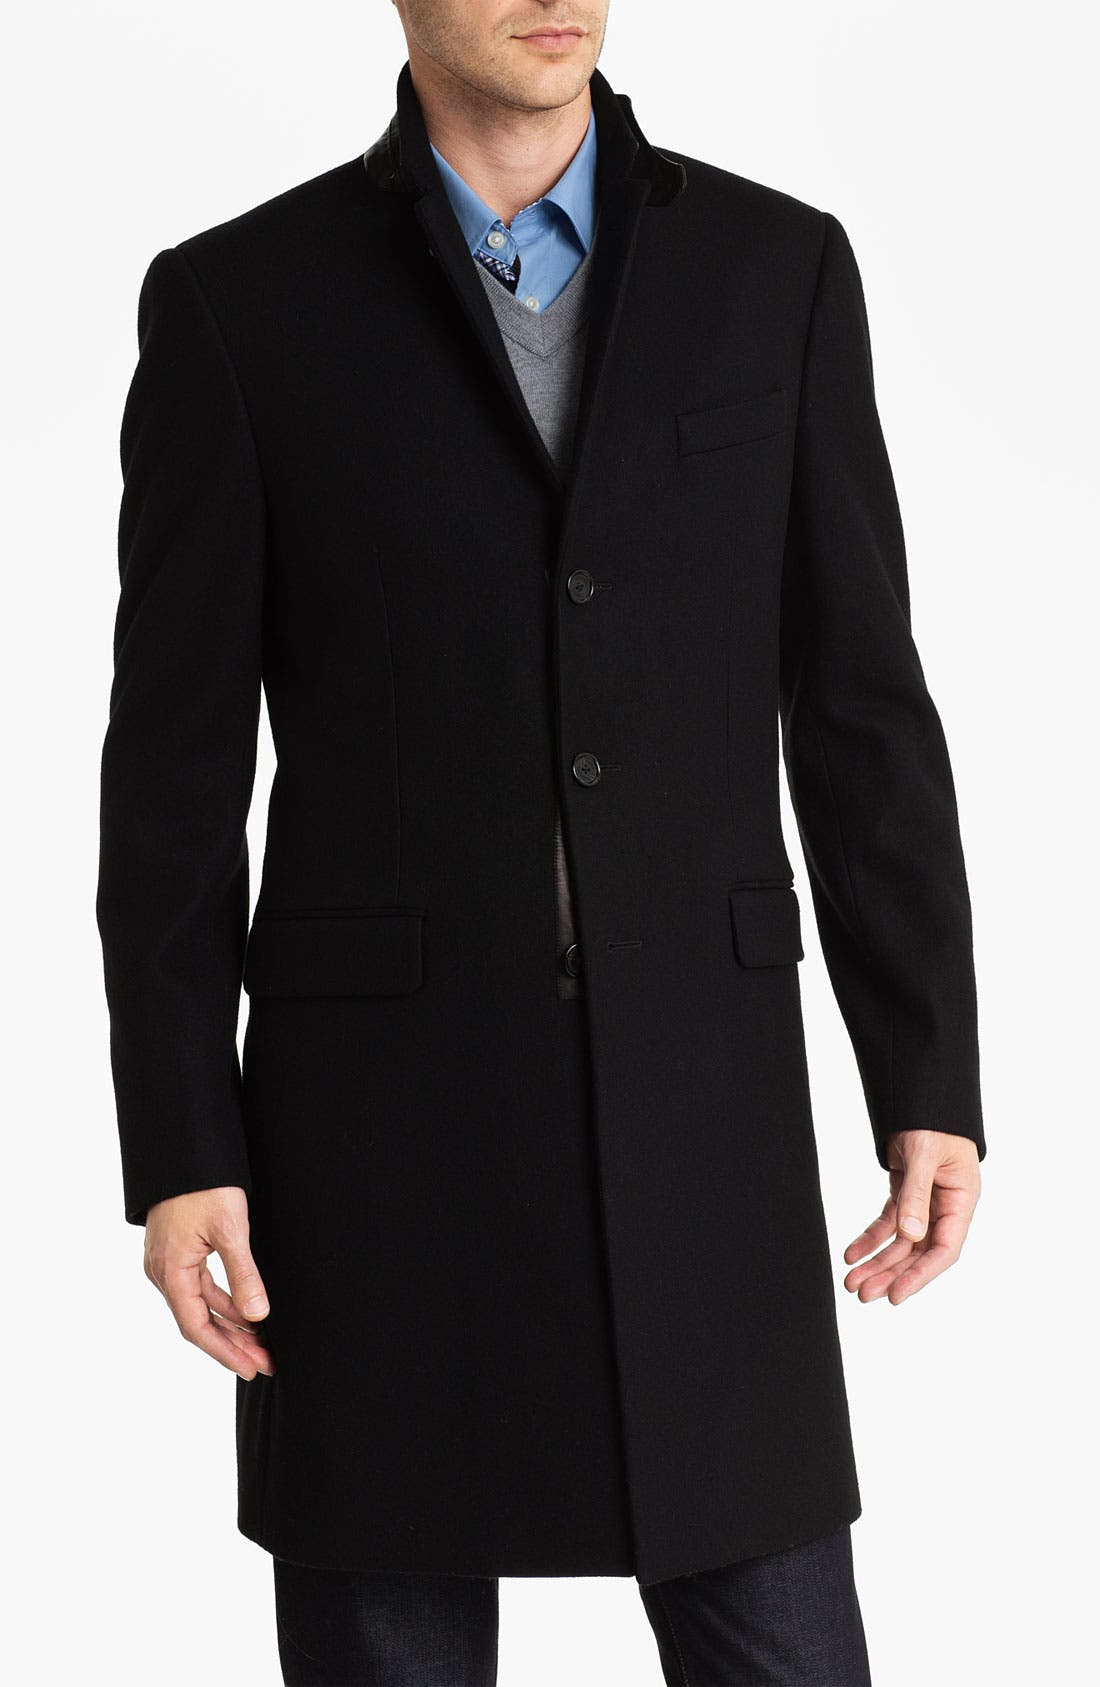 Main Image - Michael Kors Melton Topcoat with Leather Trim